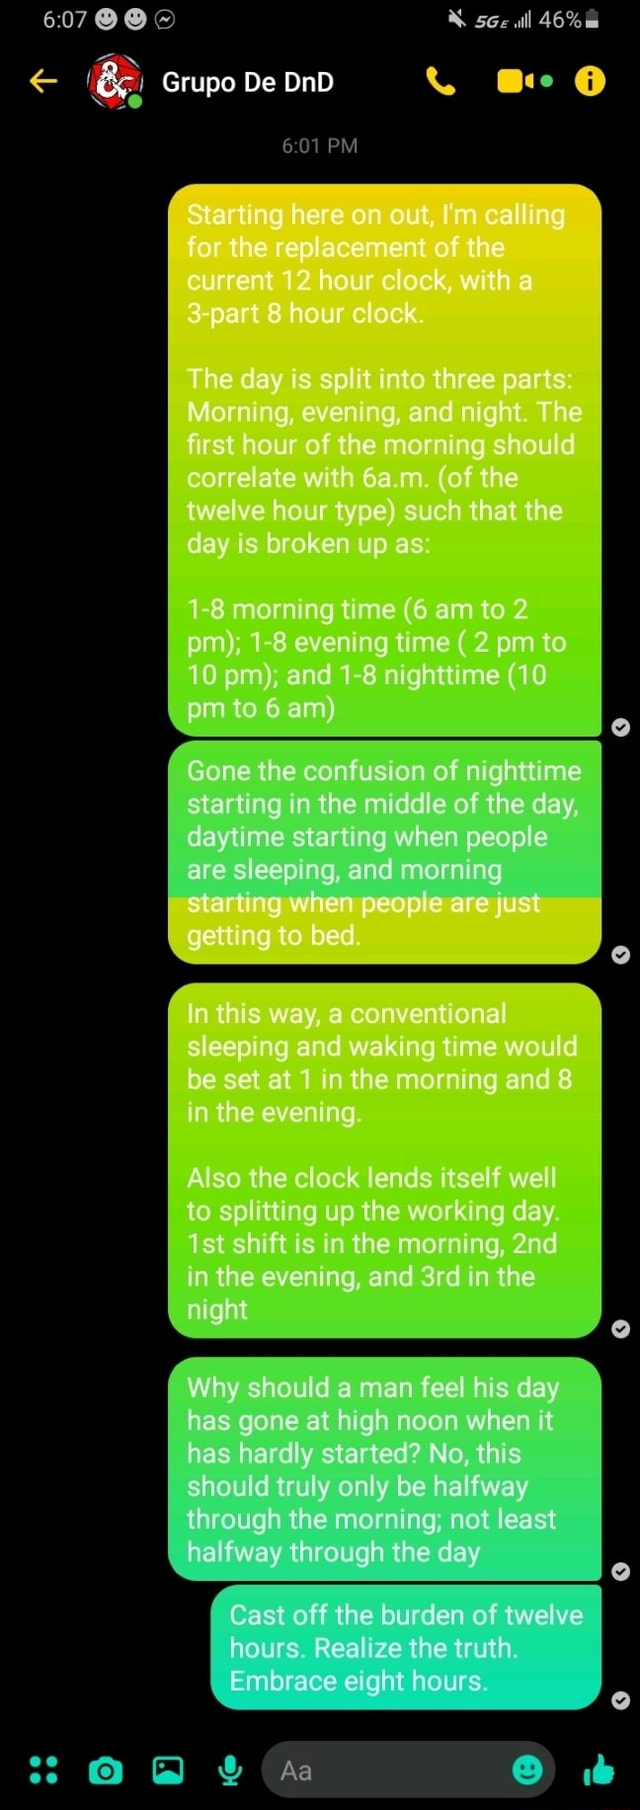 All Grupo De DnD and Ge PM Starting here on out, I'm calling for the replacement of the current 12 hour clock, with part hour oc The day is $p into three parts Morn Ag, even and night. The first hour of the morning should correlate with m of the twelve hour type such that the day is broken up as 1 8 morning time 6 am to 2 pm 1 8 evening time 2 pm to 10 pm, and 1 8 nighttime 10 to 6 am Gone the confusion of nighttime siarting in the the middle of the th day, daytime starting when people are sleeping, and morning starting when people are just getting ng to bed. In this way, a conventional sleeping and waking time would be set at in the morning and 8 in the evening Also the clock lends itself well to splitting up the working day ist shift is in the morning, in the evening, and in the might Wh